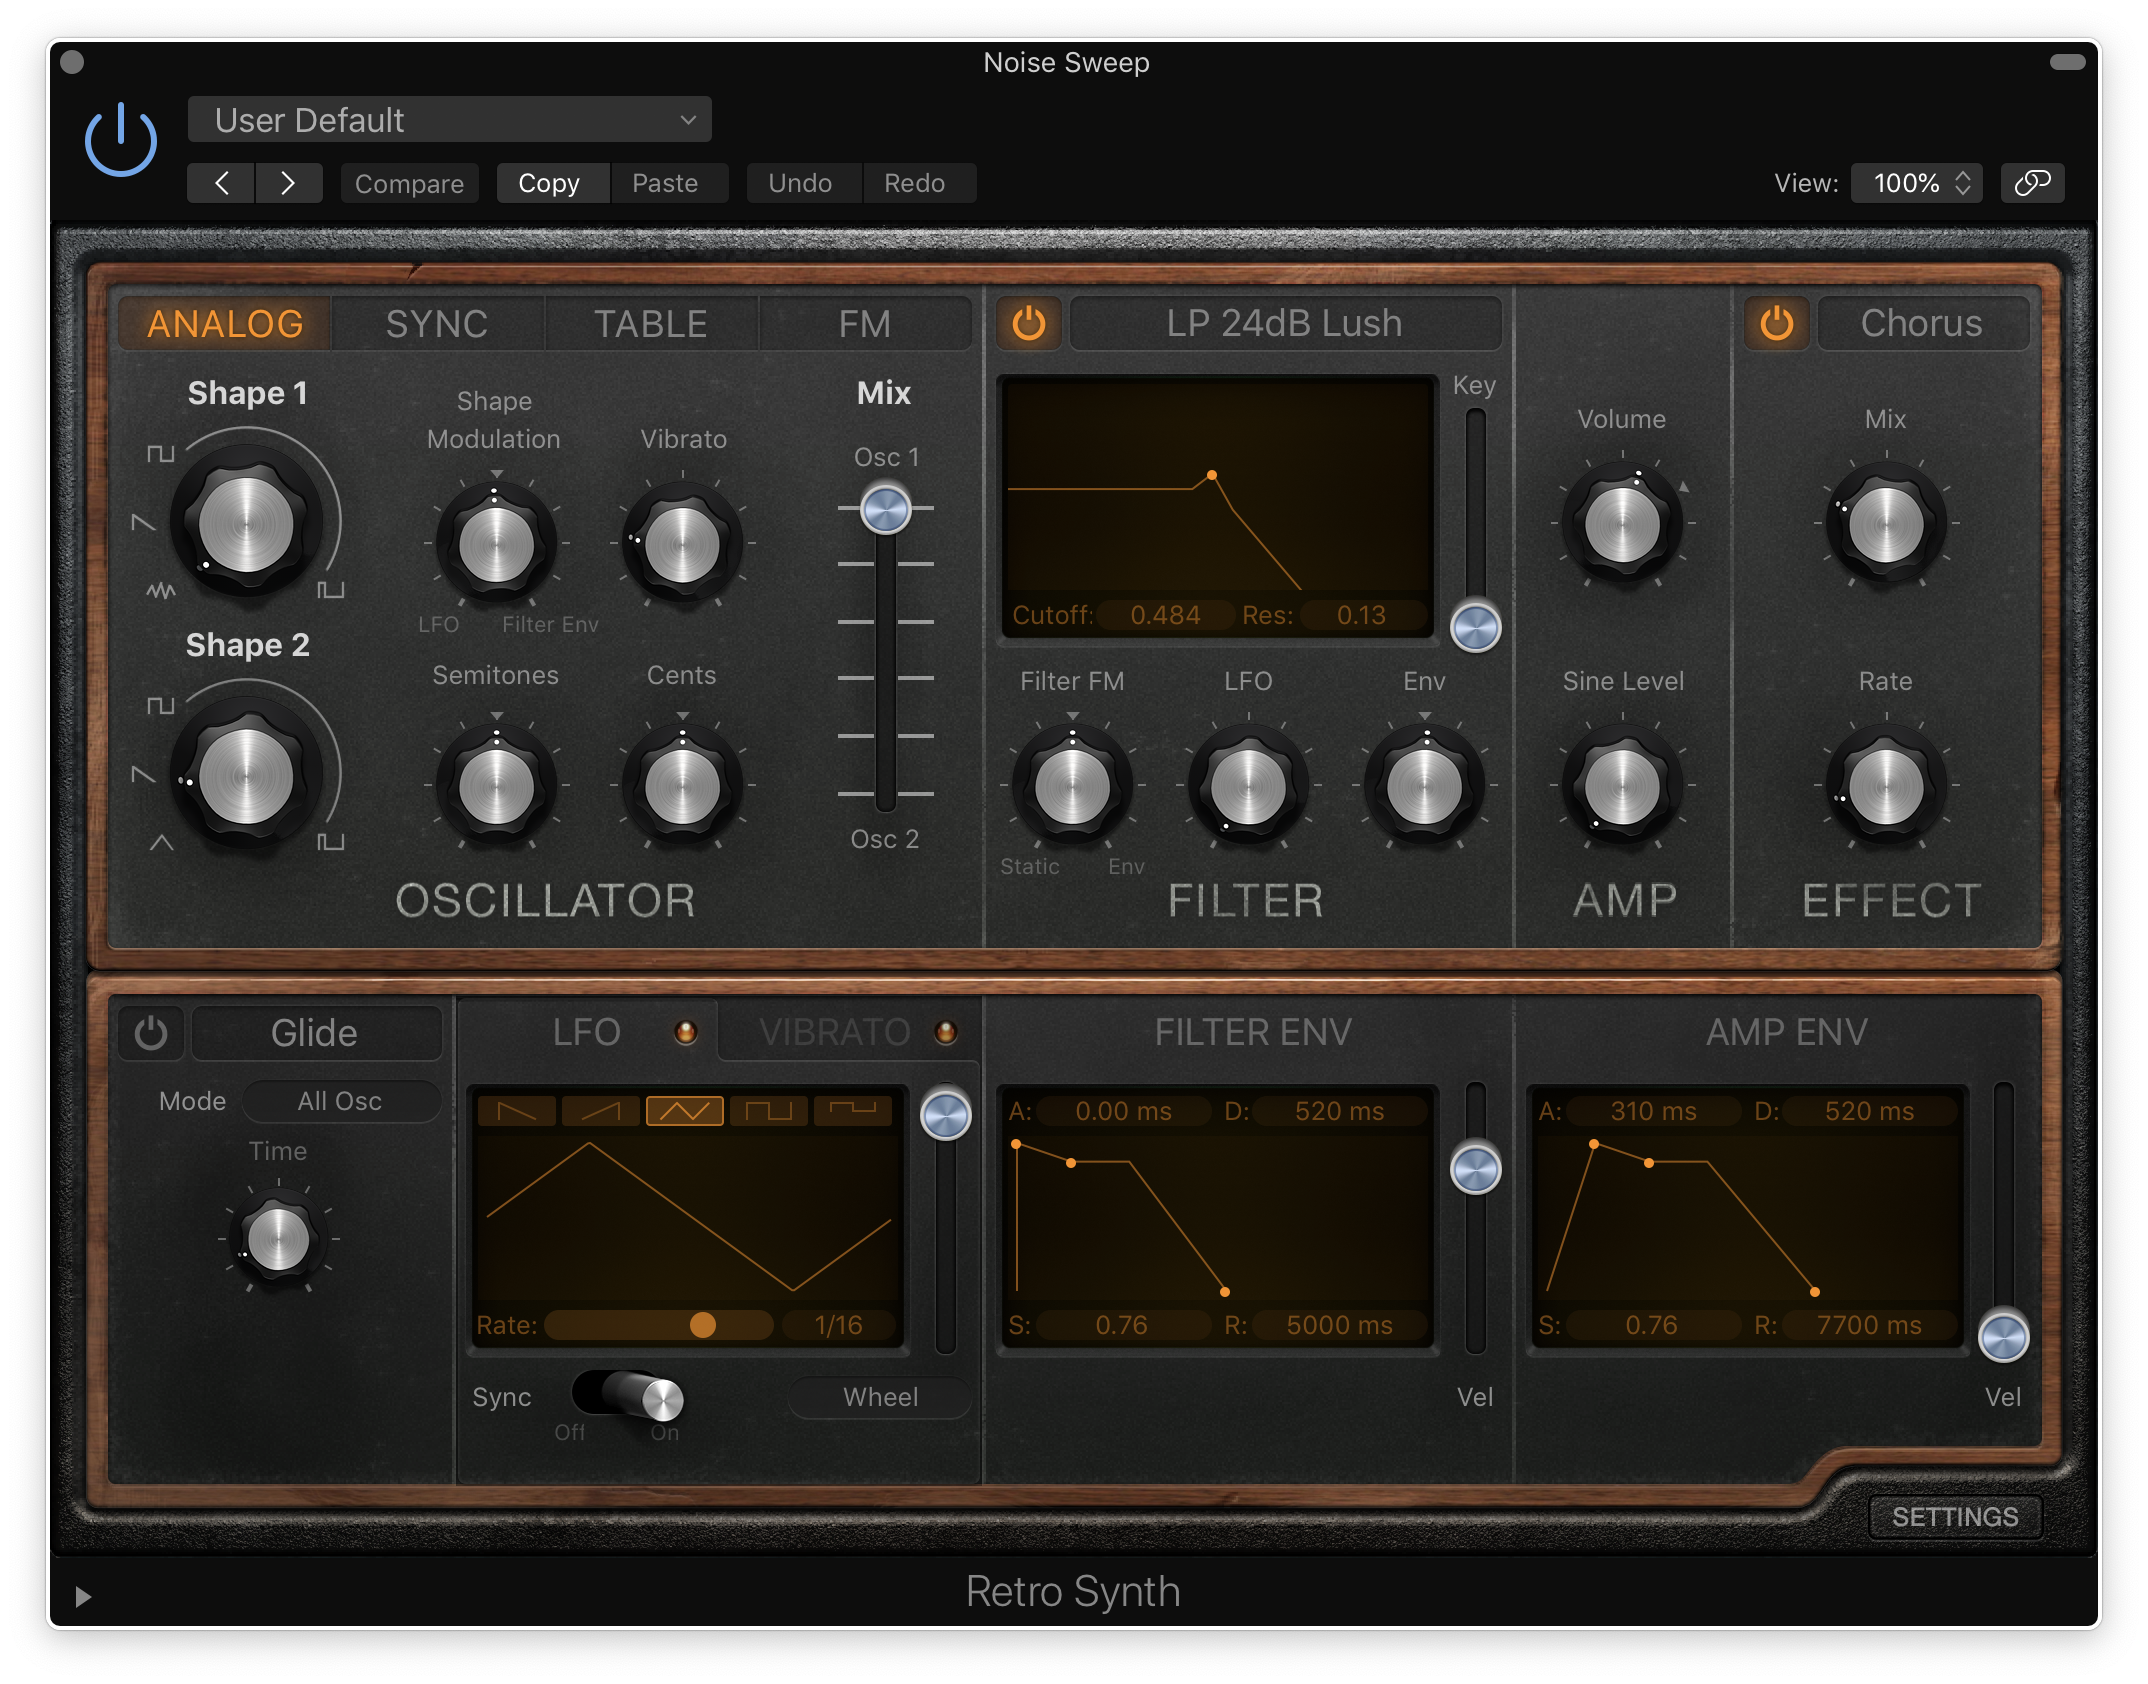 Retro Synth is an under-appreciate tool in Logic's amazing arsenal of stock instruments.